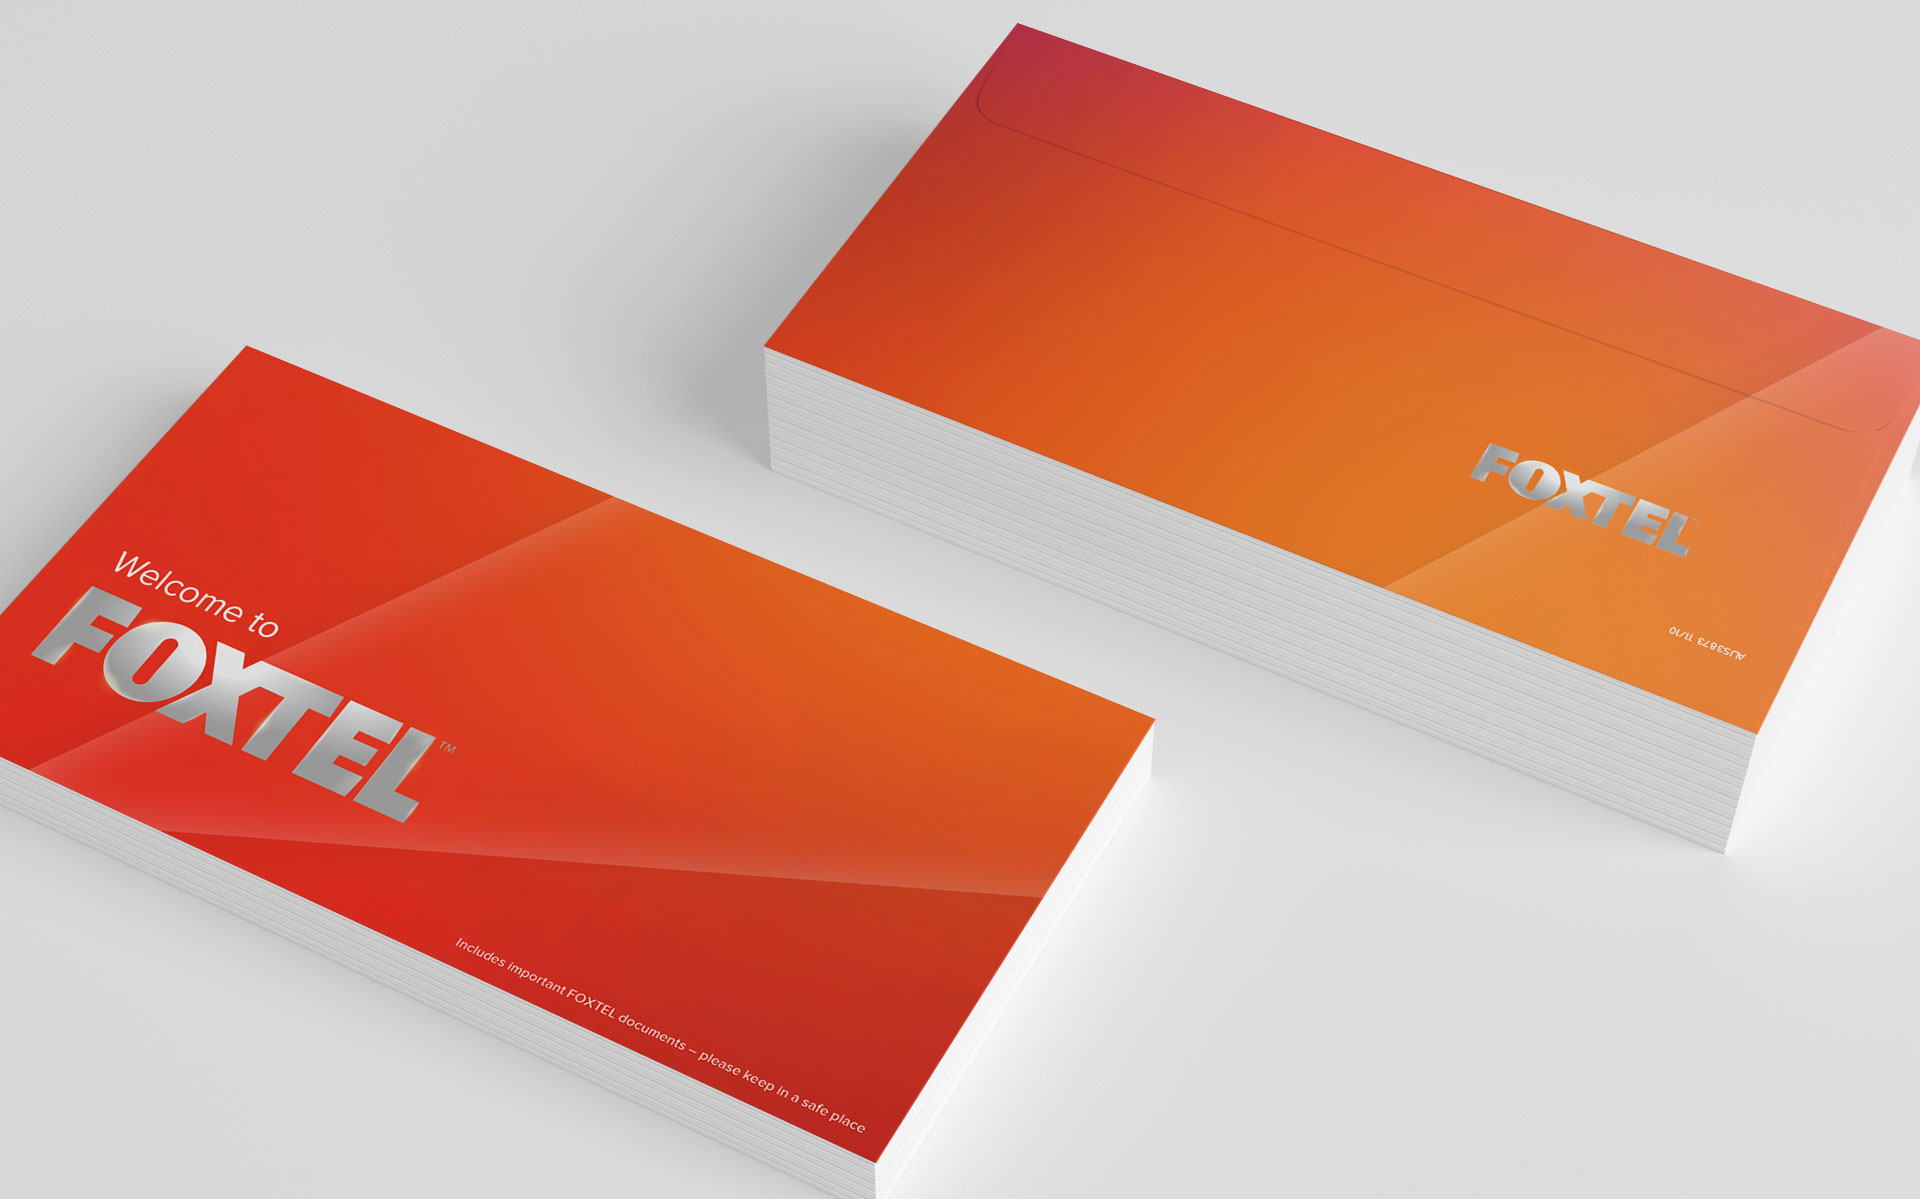 FOXTEL marketing, advertising & publications designed by Amy Howard